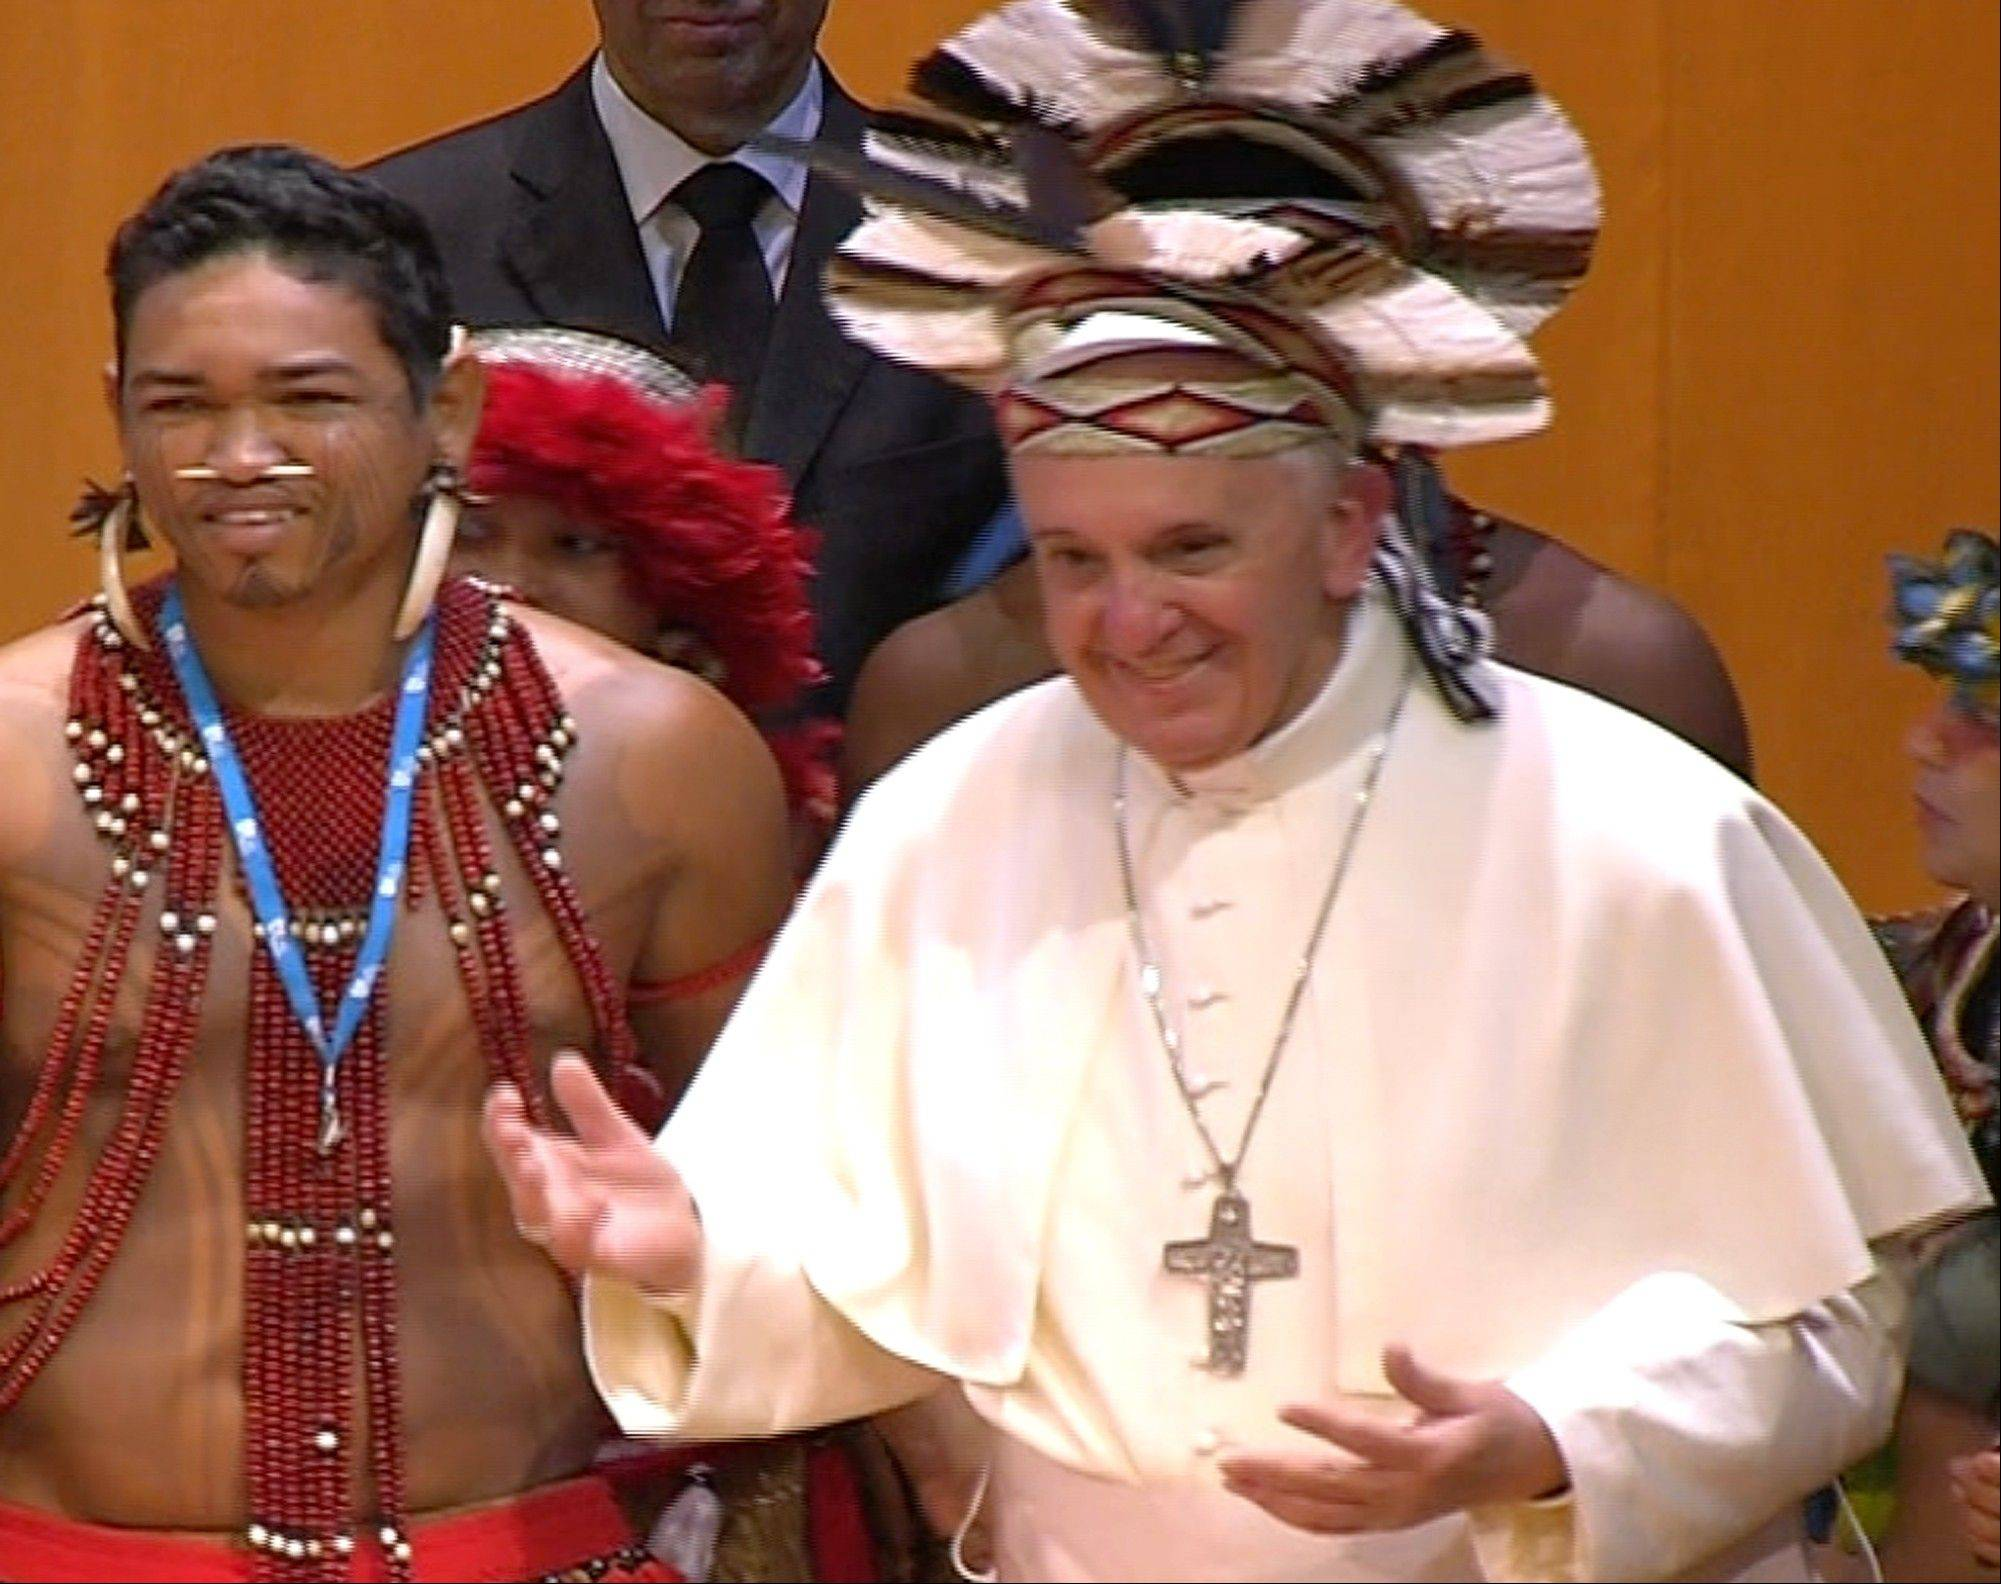 Associated PressIn this frame grab from video Pope Francis wears an indigenous feather hat given to him by representatives of one of Brazil's native tribes during a meeting at the Municipal Theater in Rio de Janeiro on Saturday, July 27. Pope Francis is on the sixth day of his trip to Brazil where he will attend the 2013 World Youth Day in Rio.